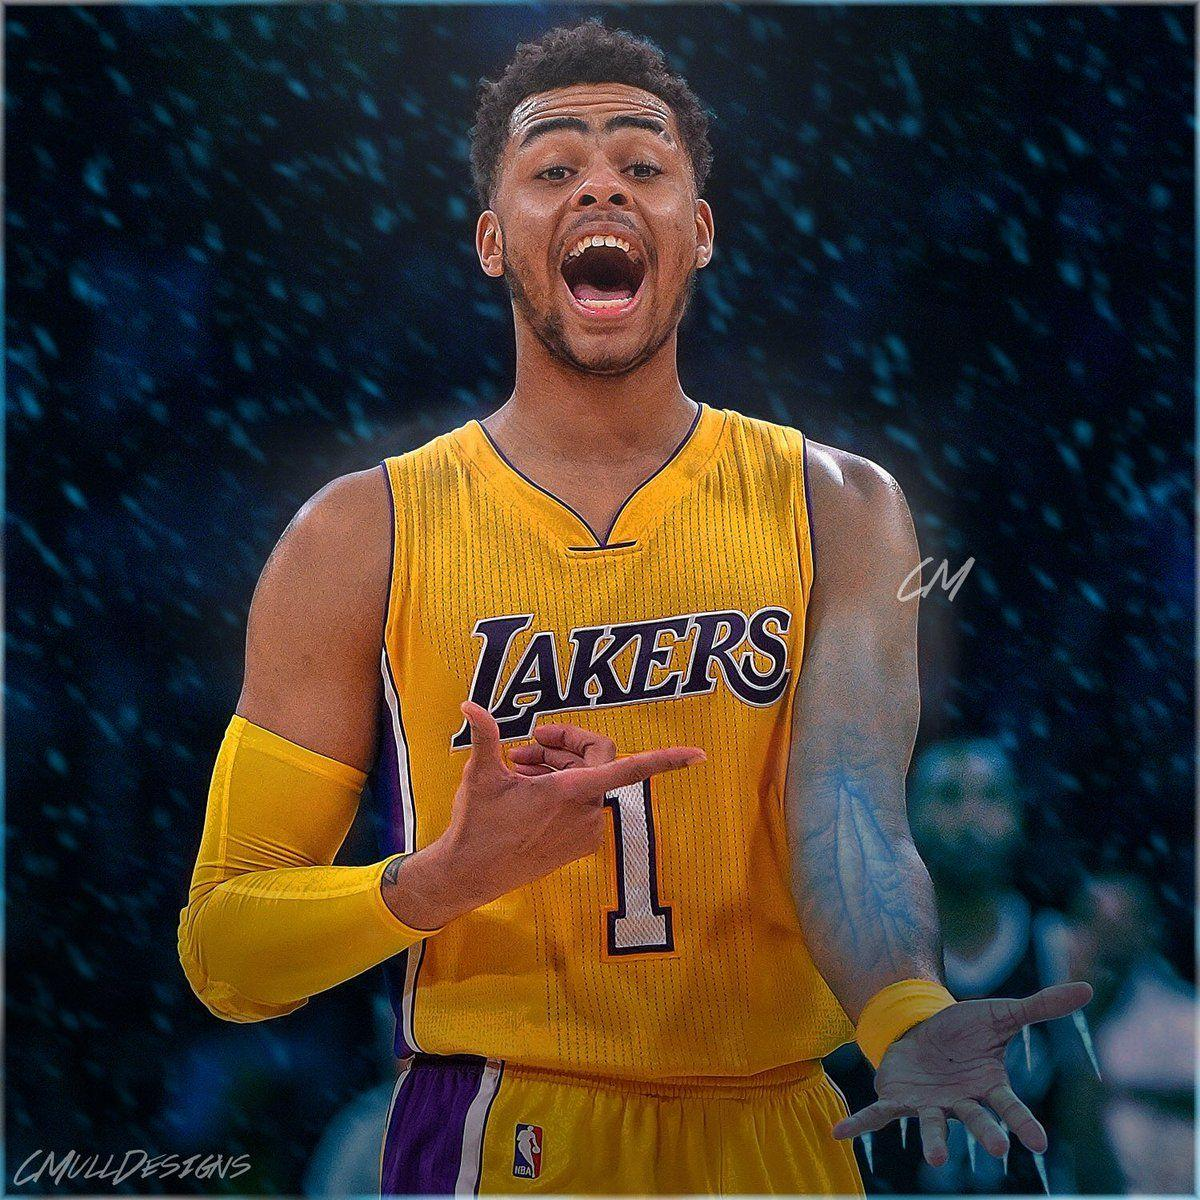 NBA on Twitter: D'Angelo Russell's got it going for the @Lakers